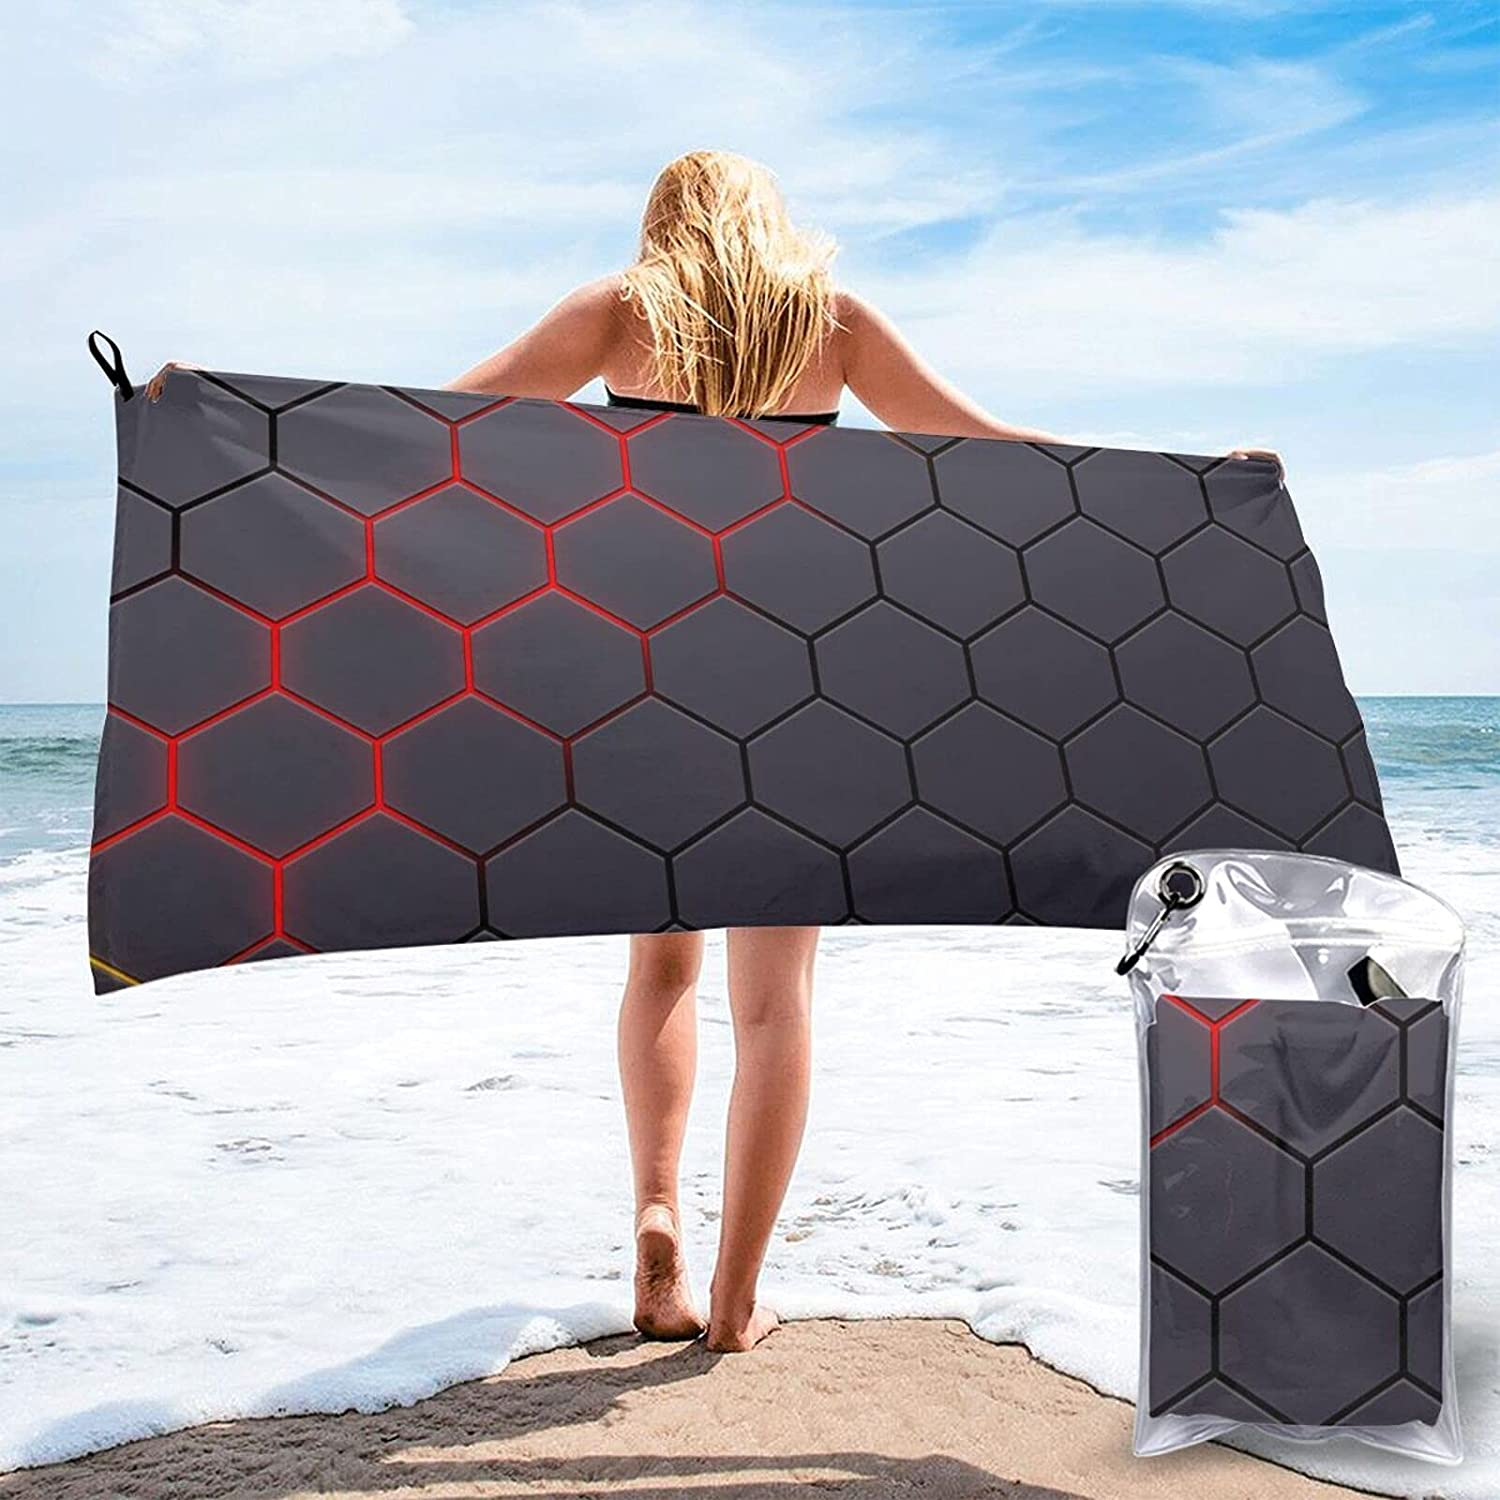 Honeycomb Hexagonal Finally resale start Texture Quick Dry Abso Free Towel Super outlet Sand